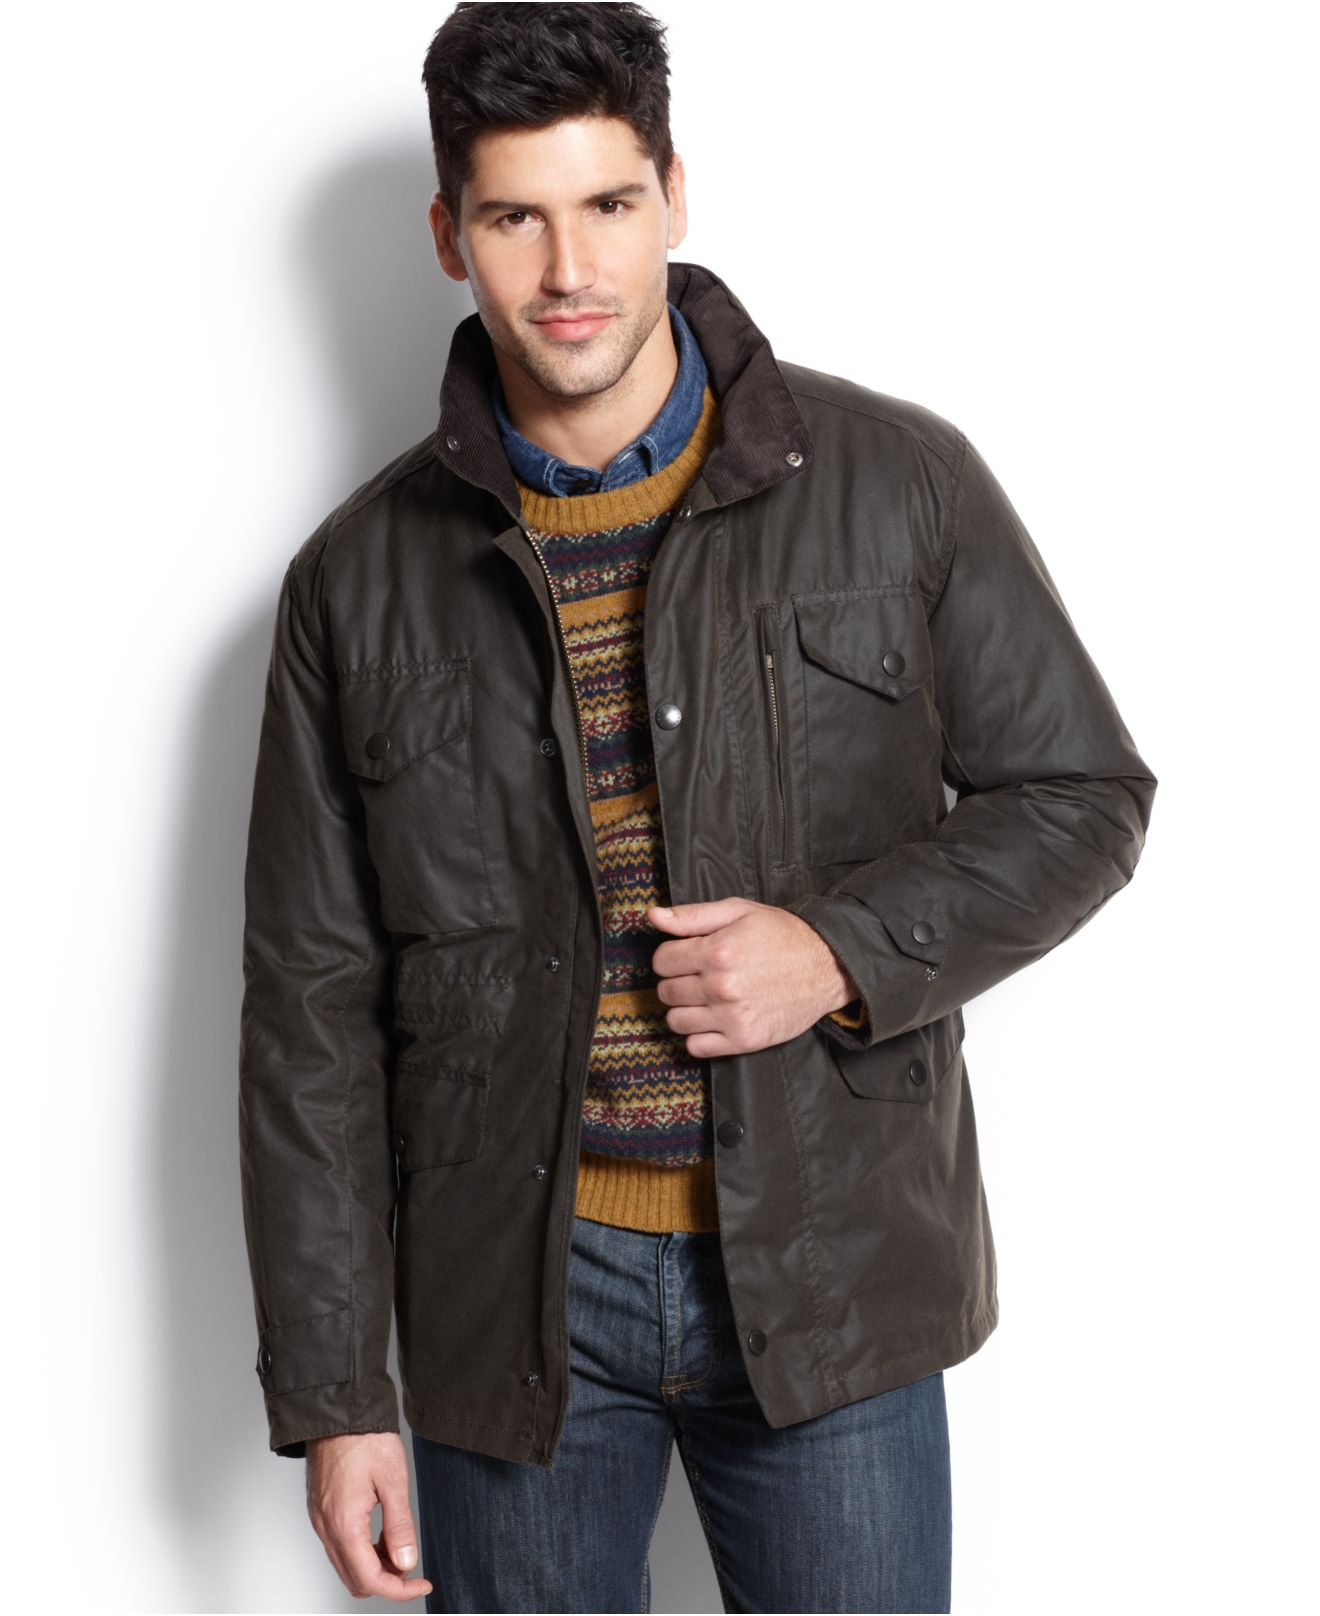 Green Jacket Leather Sleeves